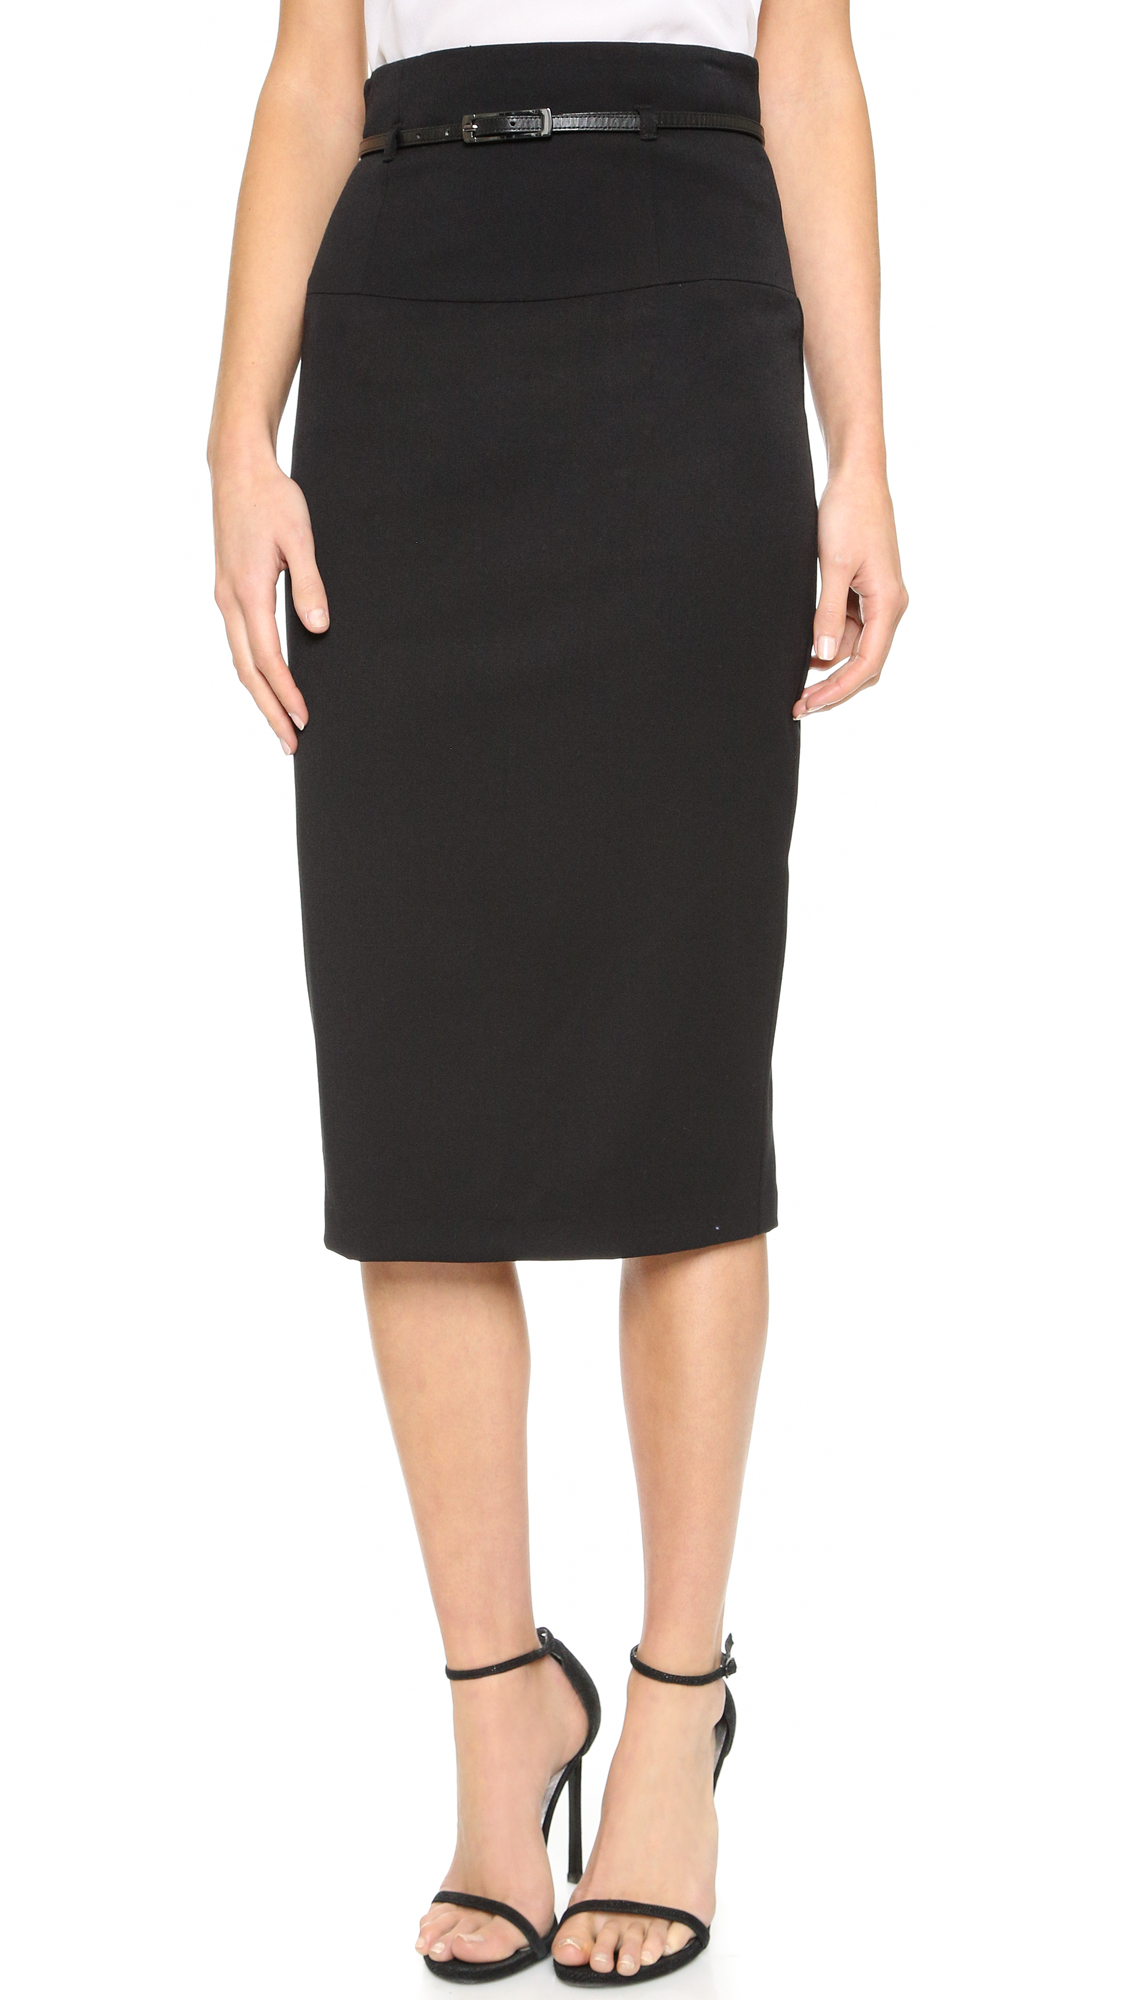 Black Halo High Waisted Pencil Skirt | SHOPBOP